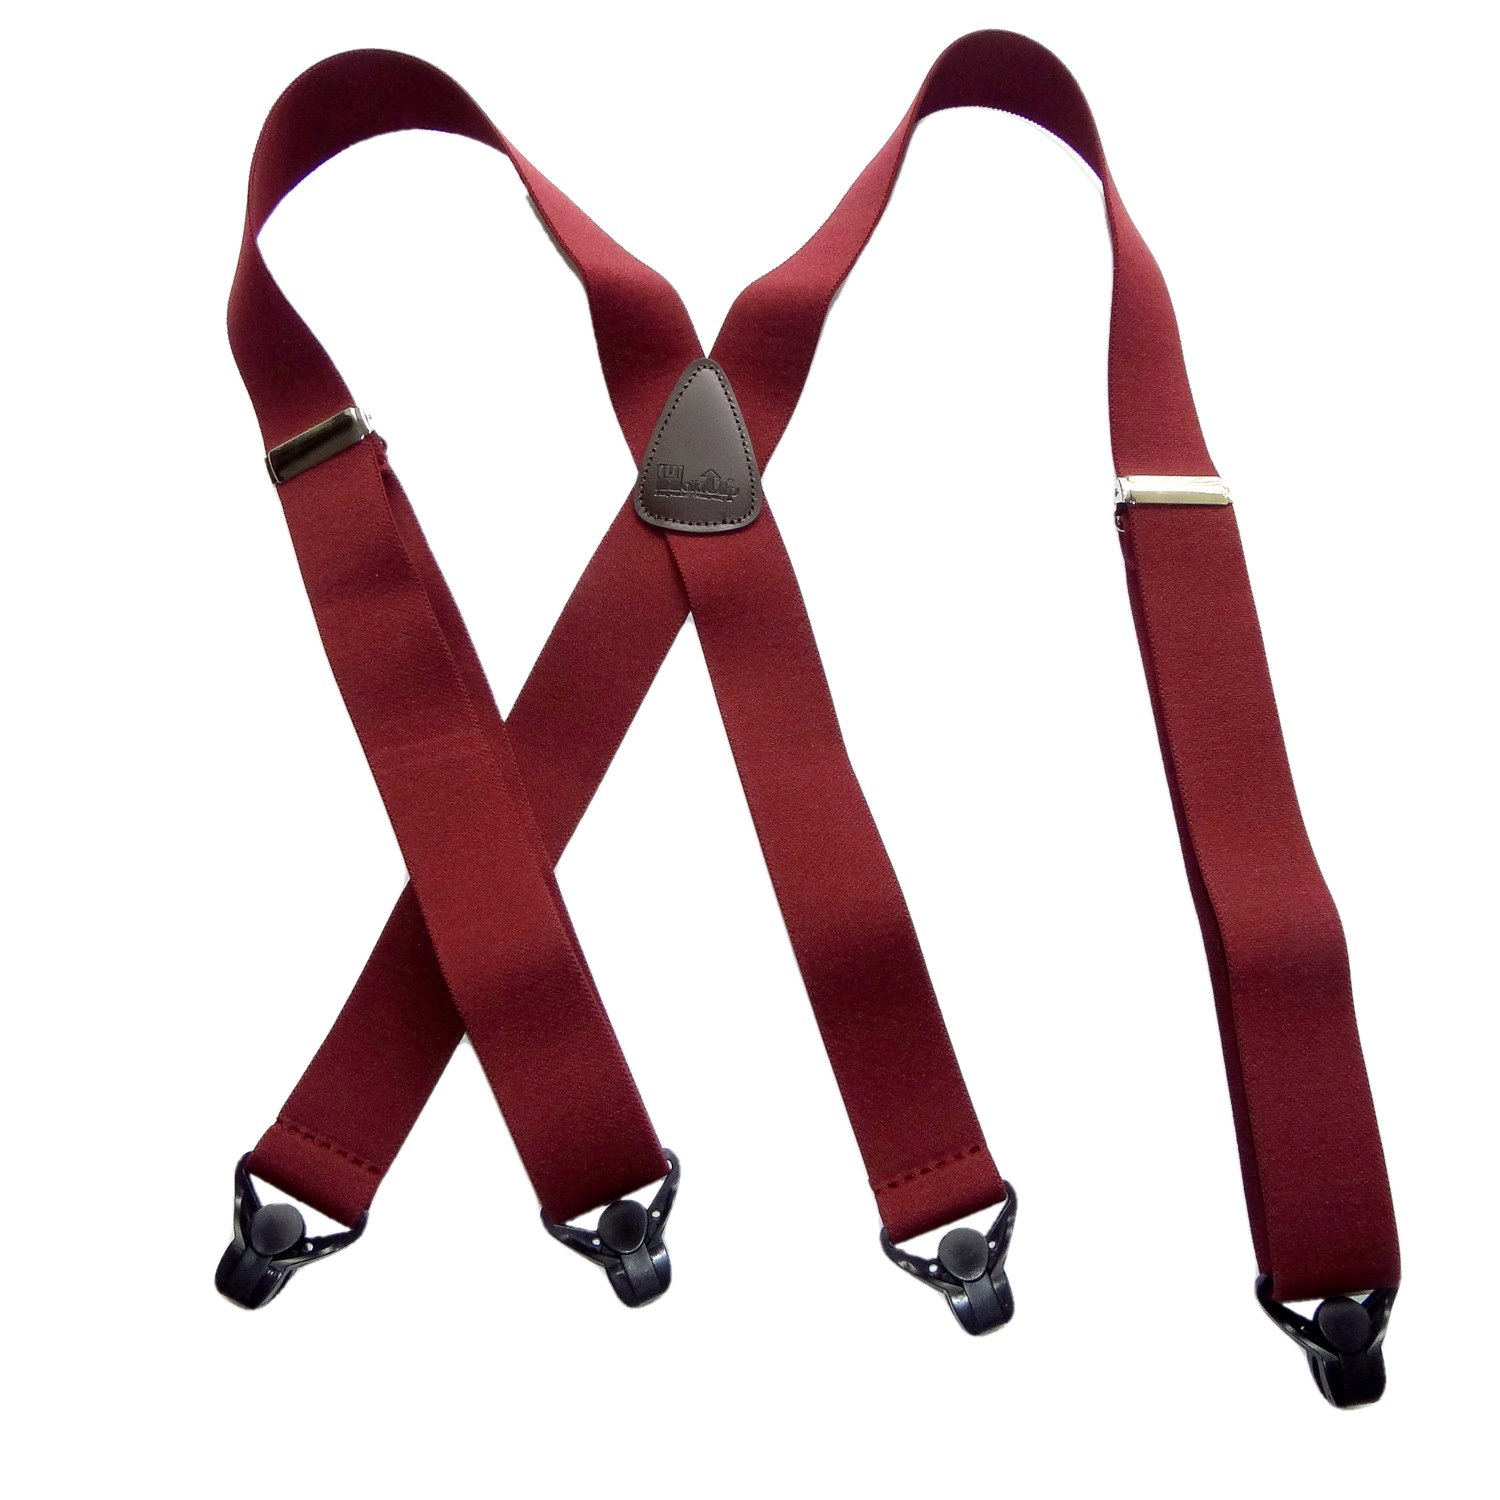 Holdup Classic 1 1/2'' Wide dark Burgundy Suspenders with Silver No-slip Clips and X-back